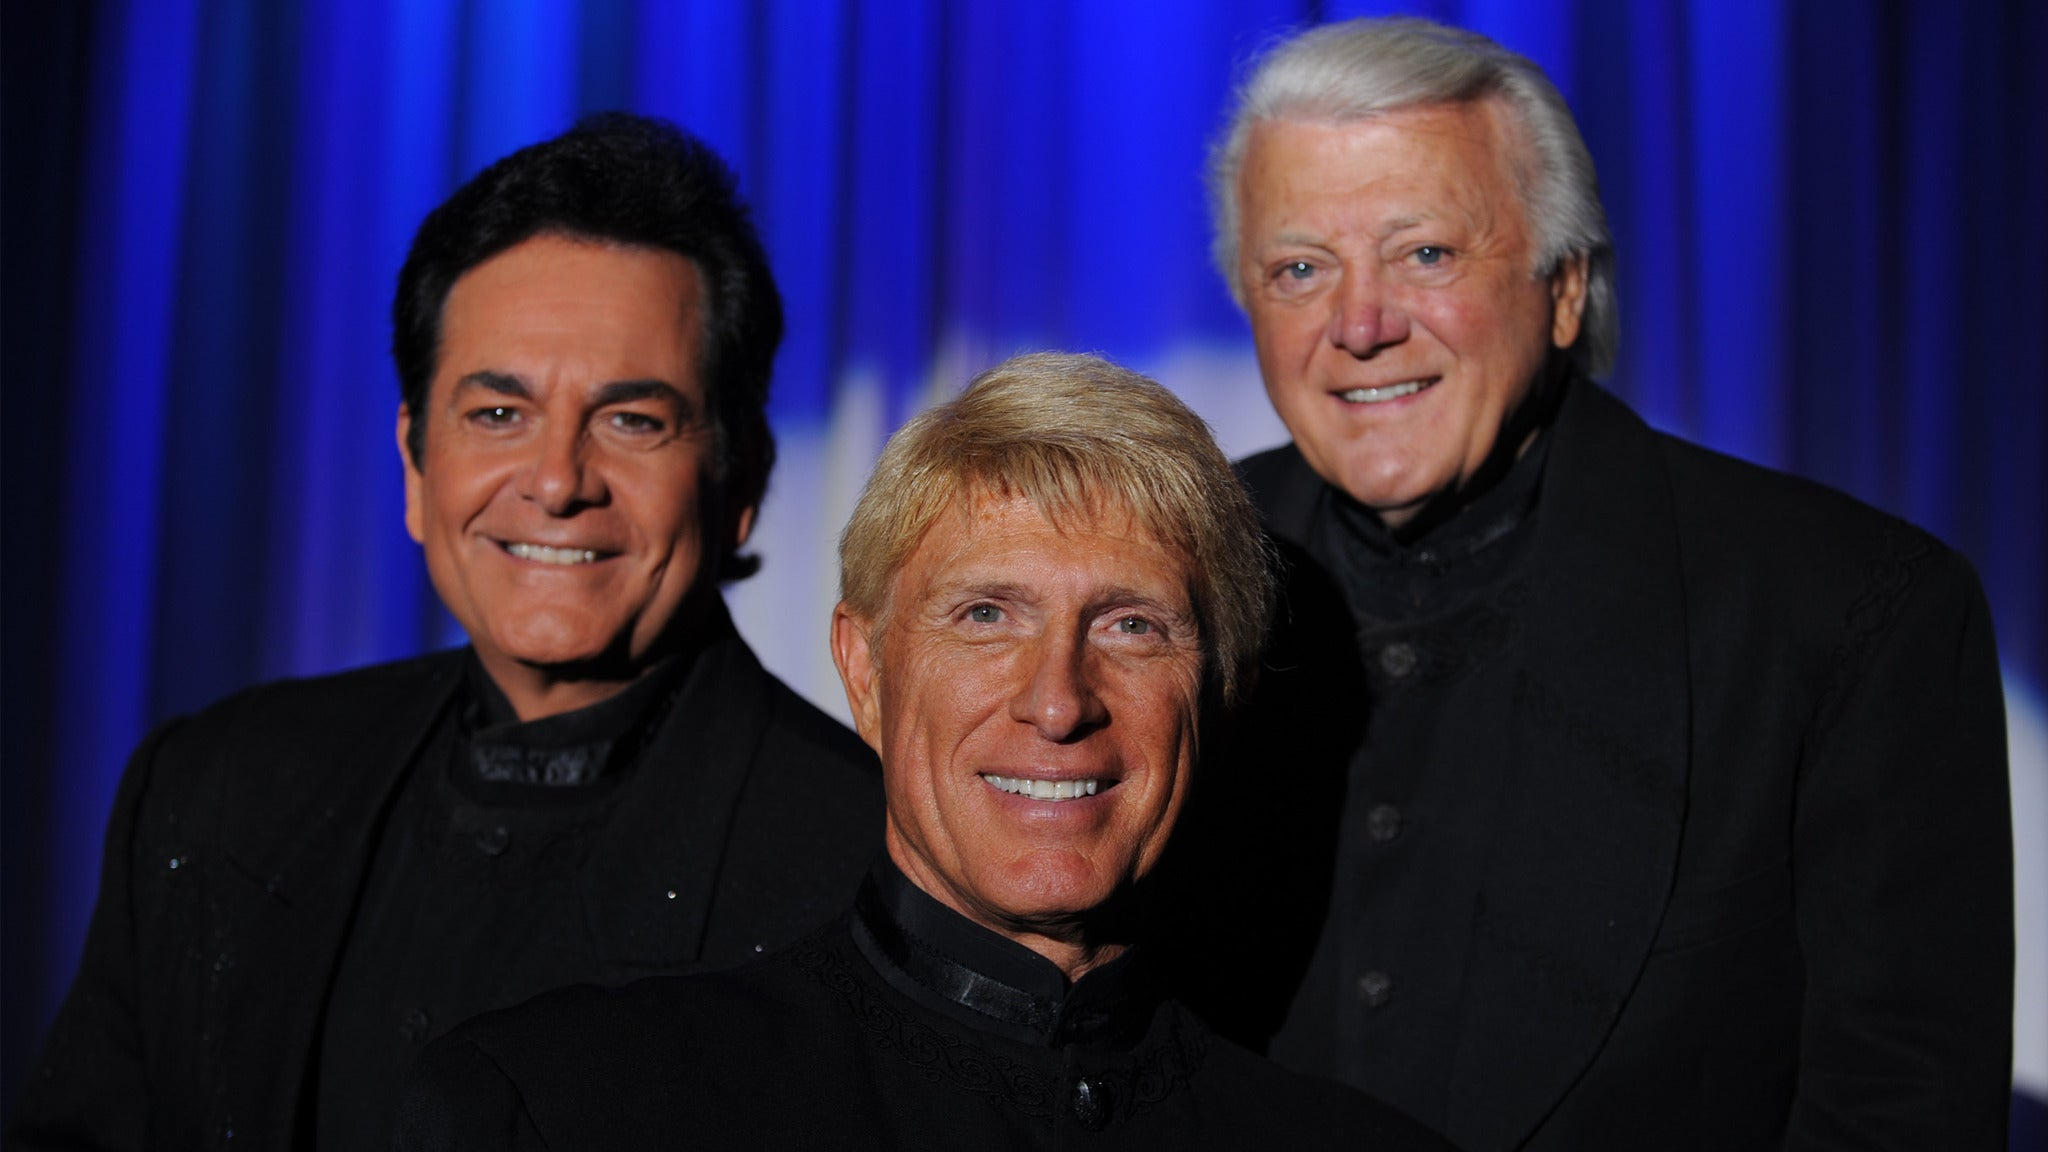 The Lettermen at Cerritos Center